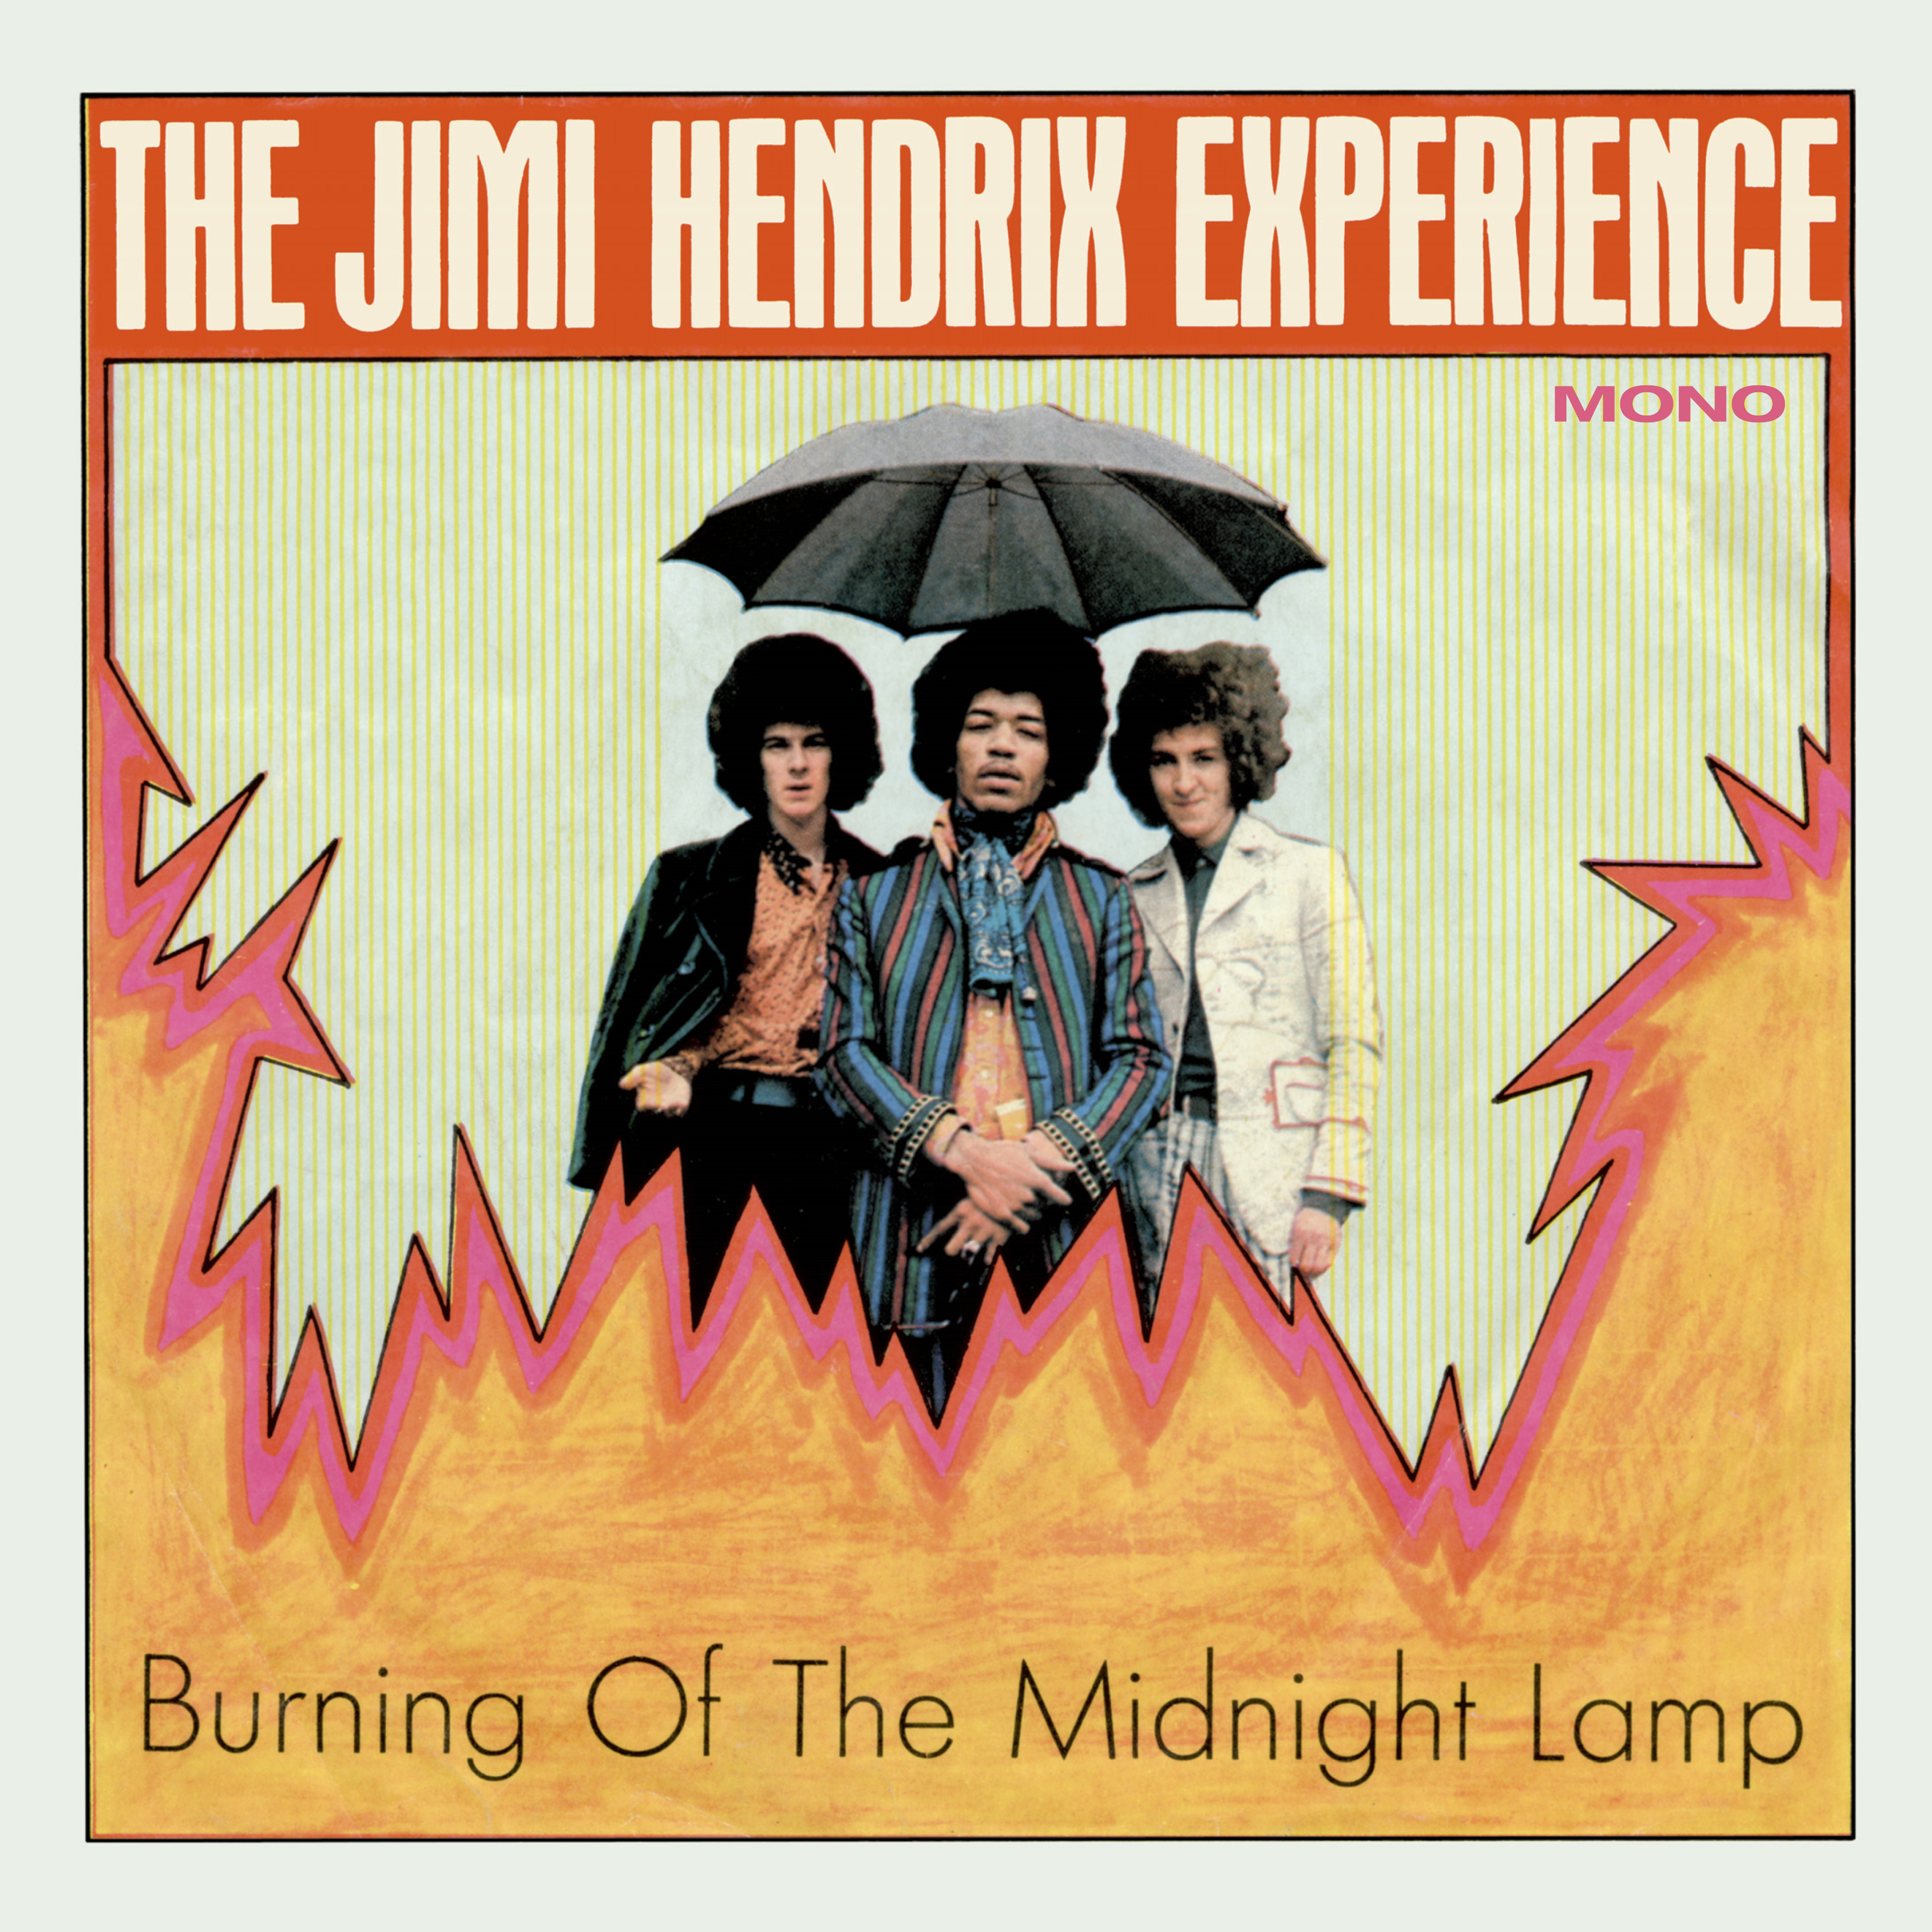 The Jimi Hendrix Experience - Burning of the Midnight Lamp Mono EP